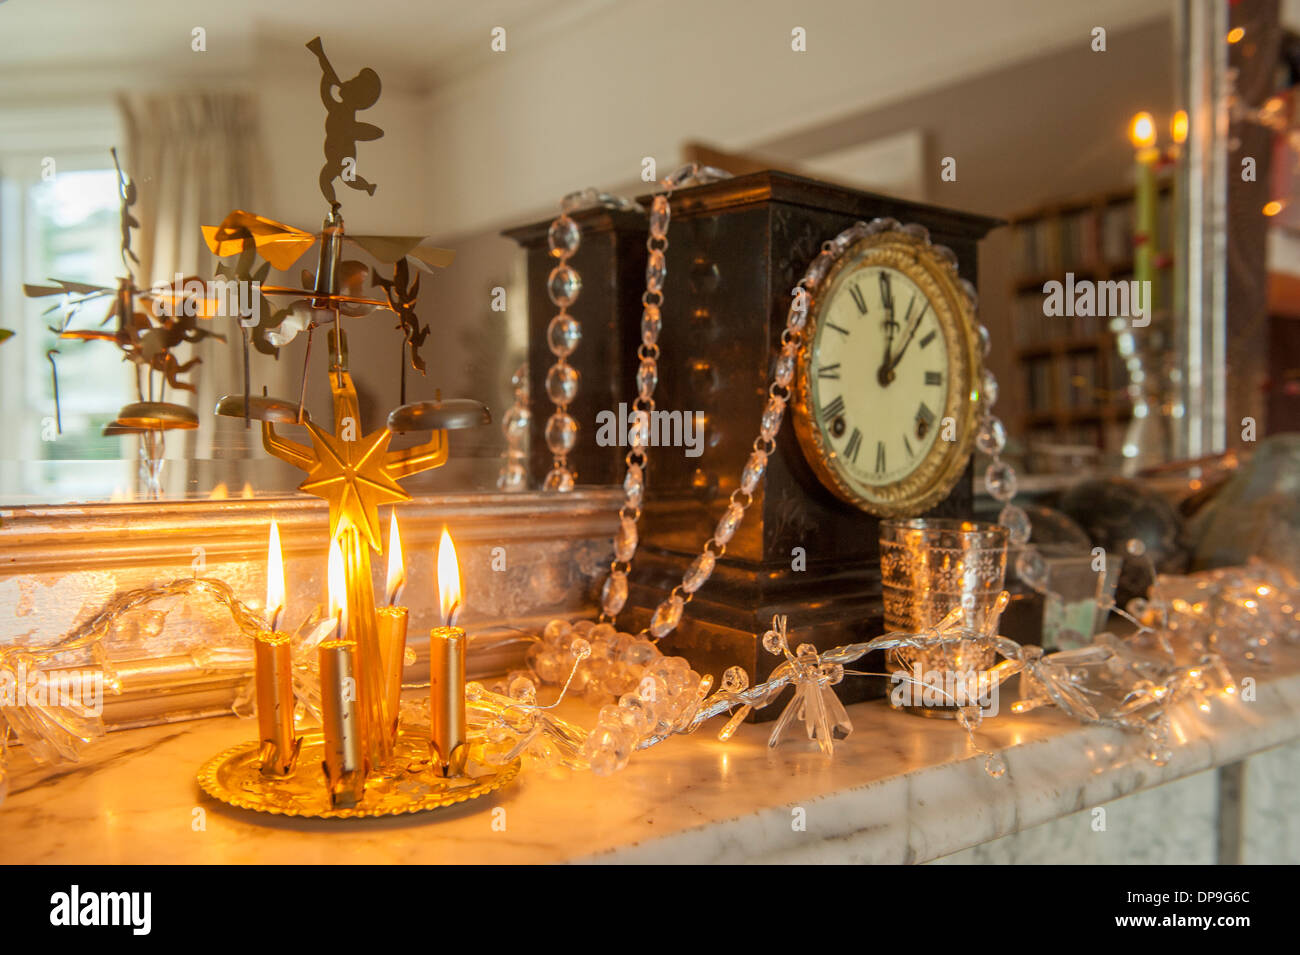 an antique clock above a fireplace with a christmas candle chime